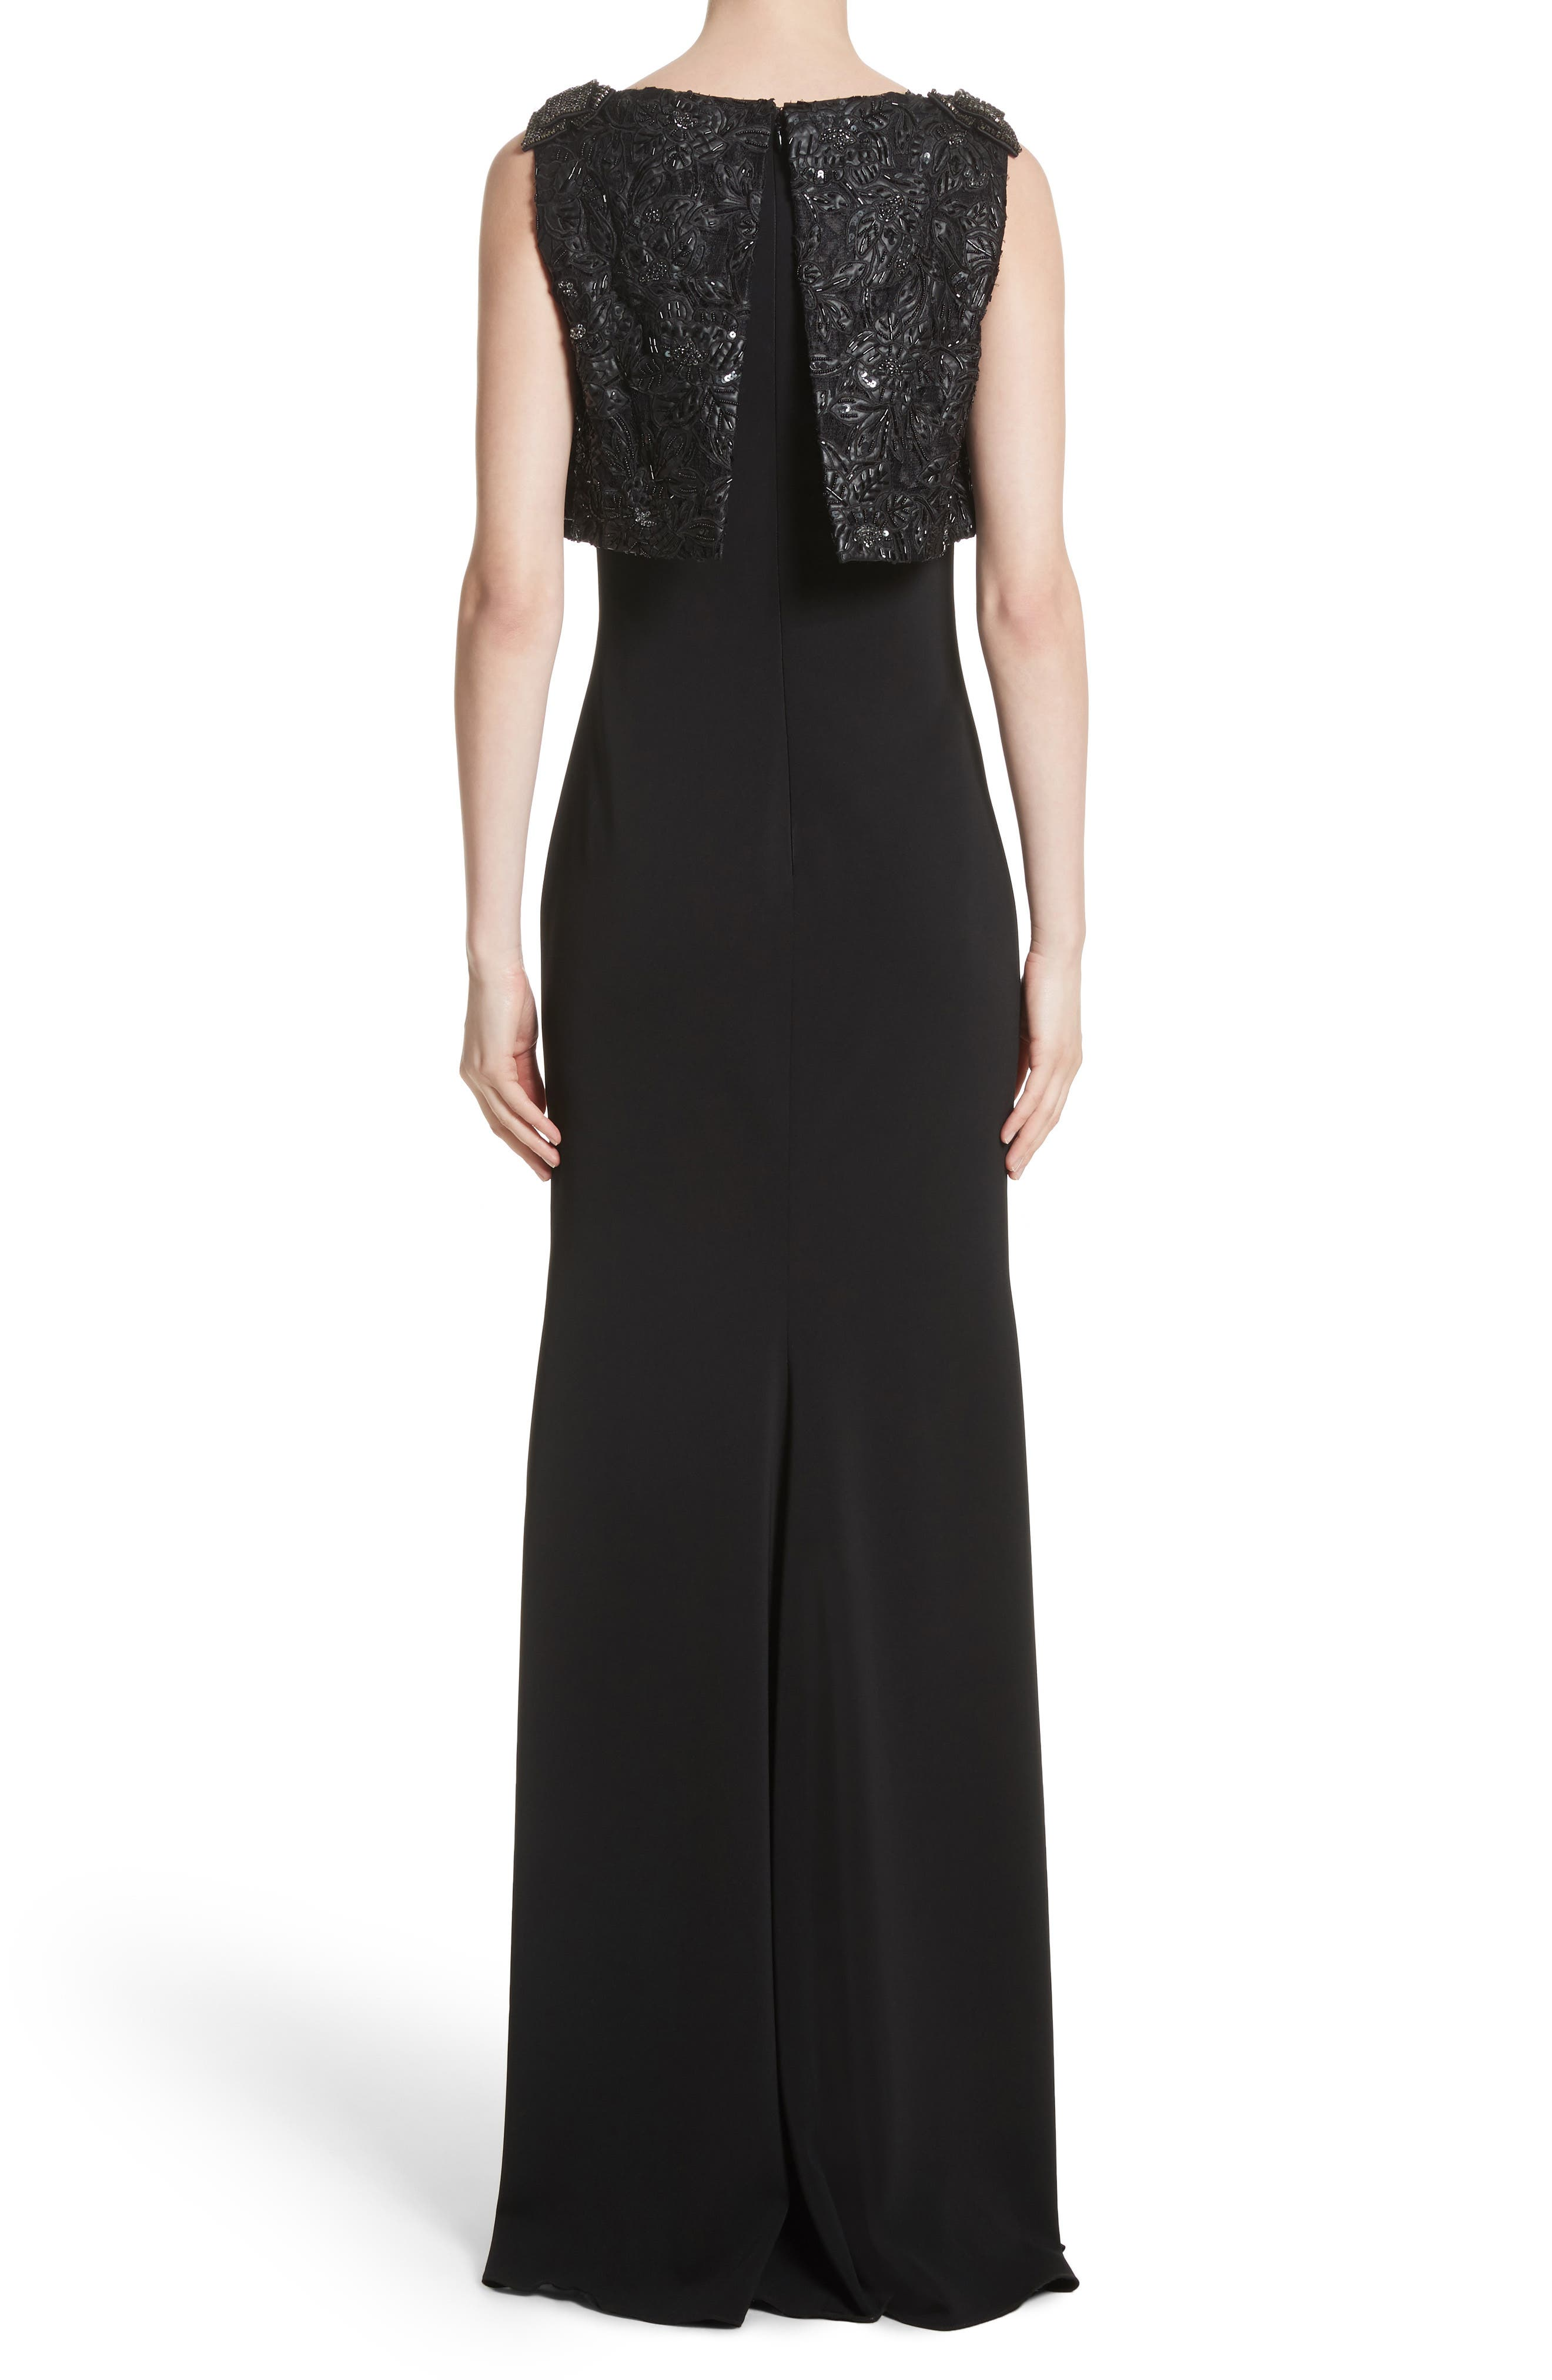 Badgley Mischka Couture Embellished Popover Gown,                             Alternate thumbnail 2, color,                             001